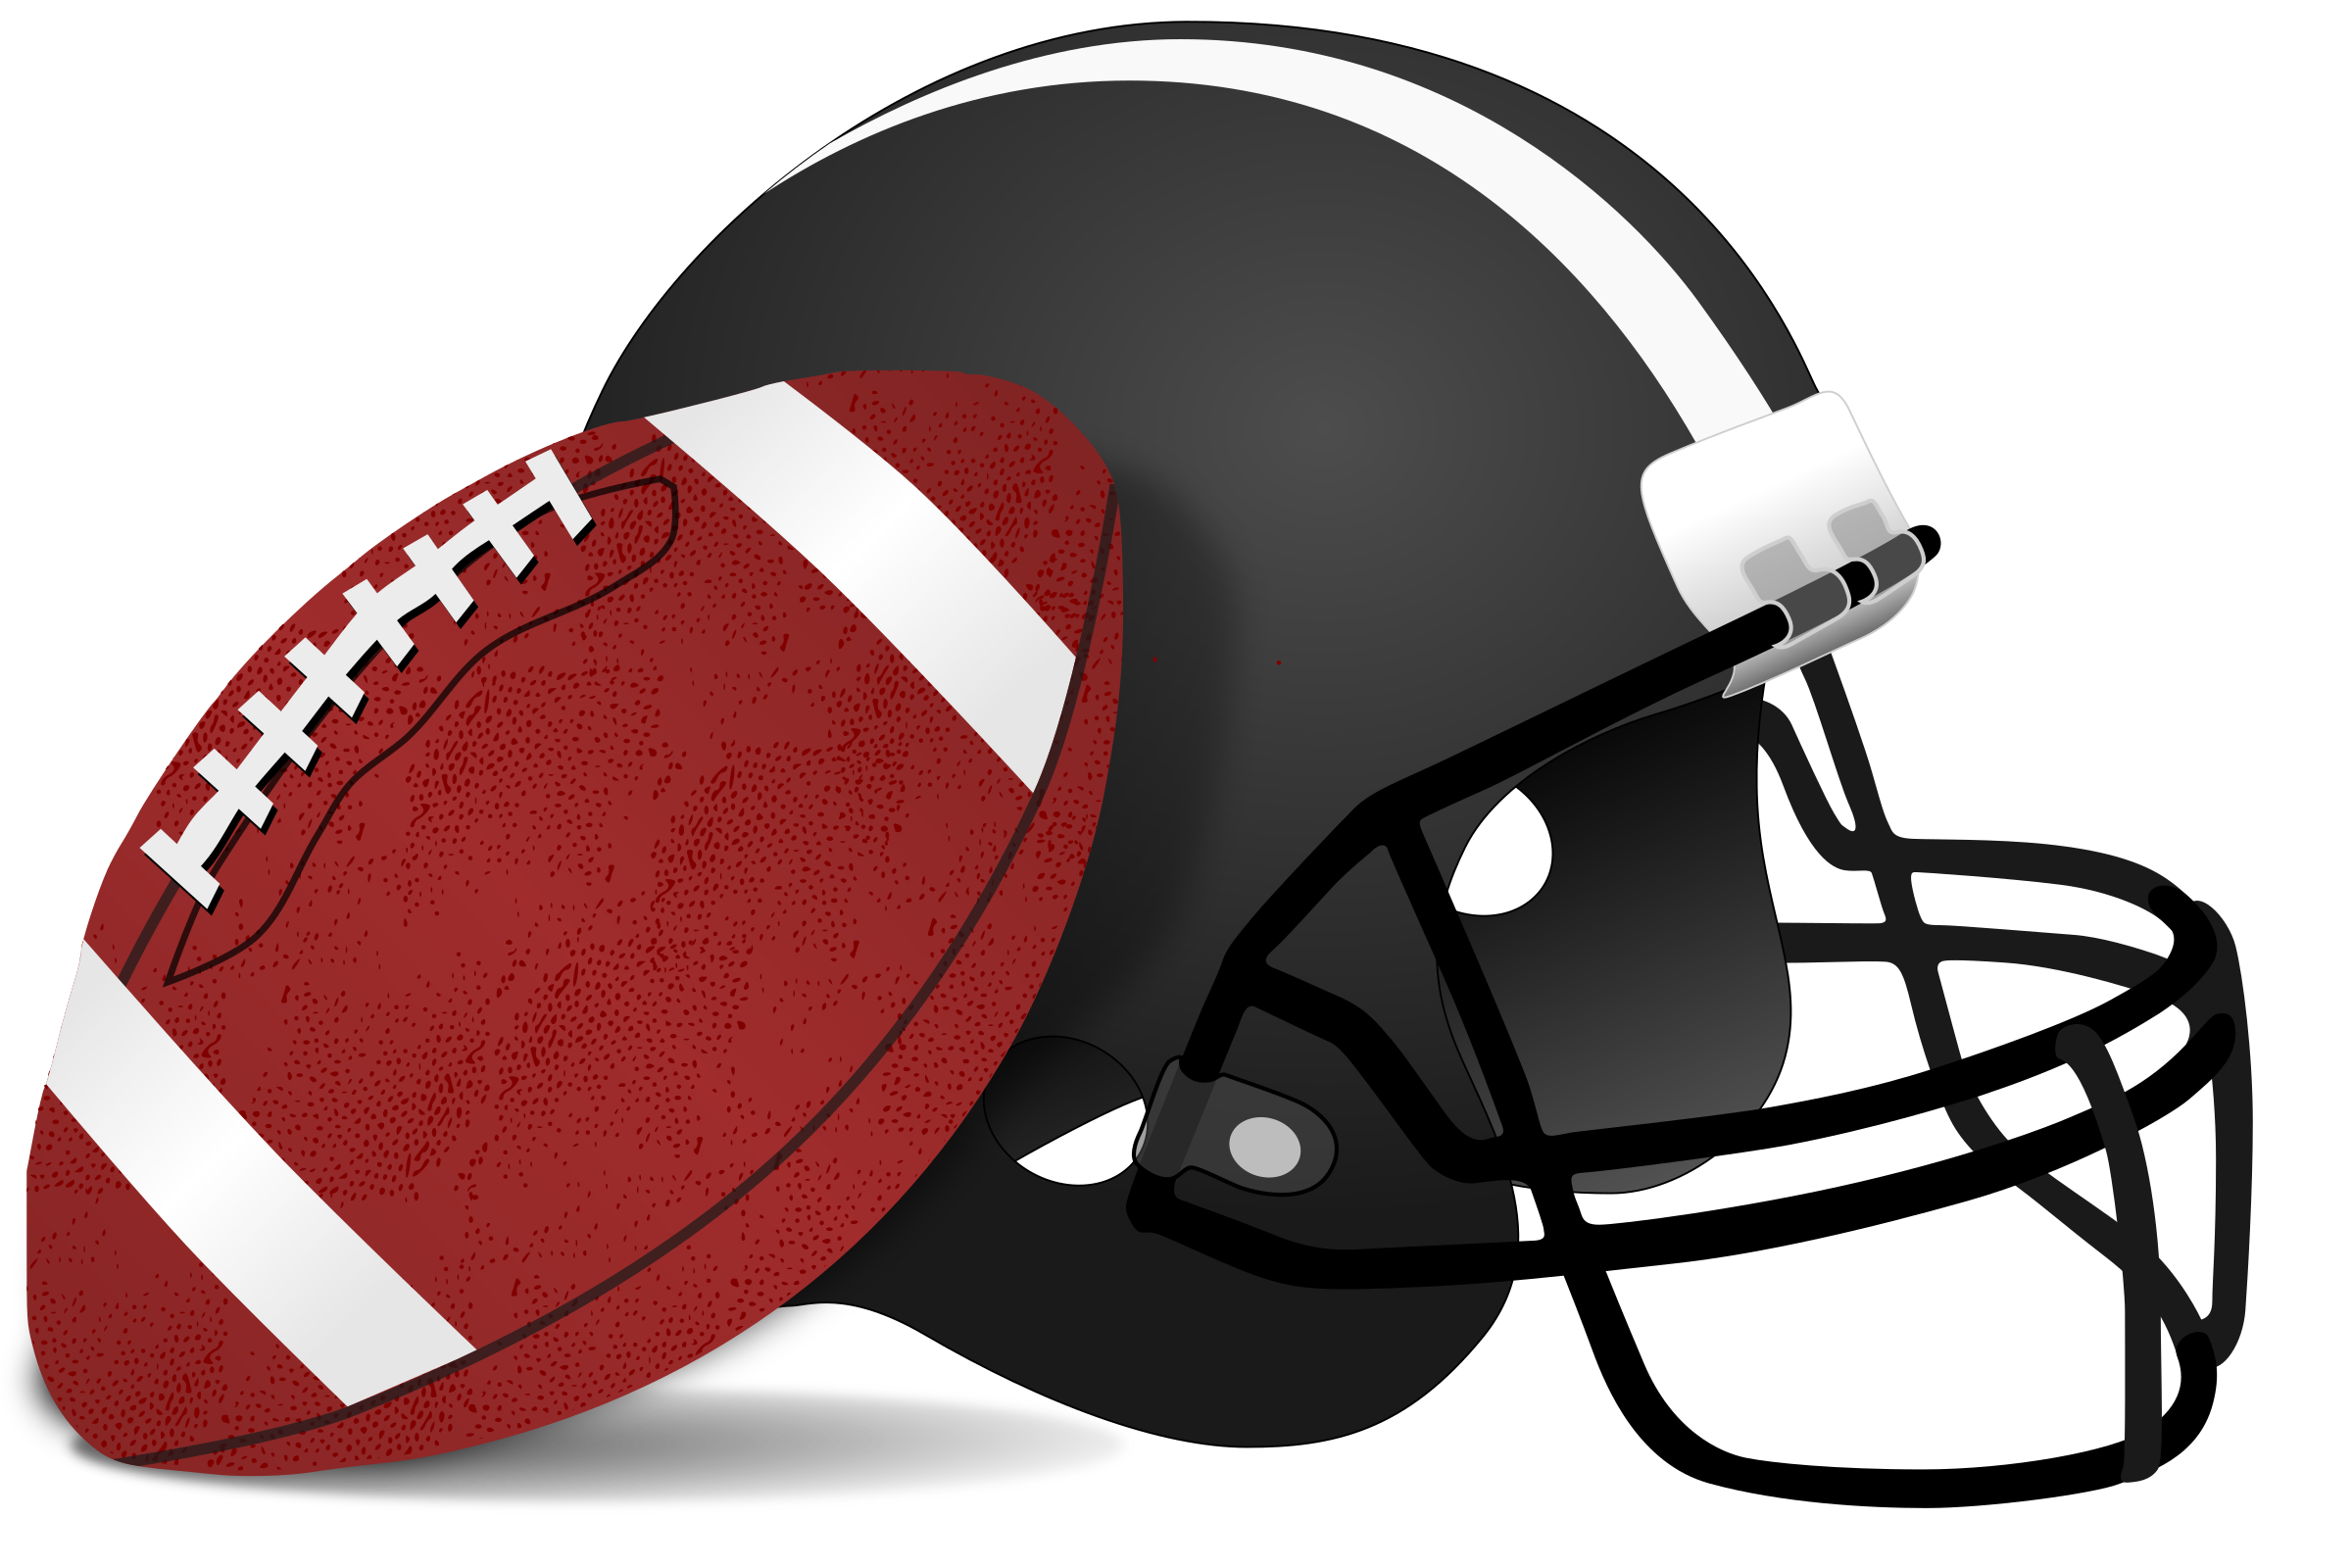 2400x1600 American Football Sport Png Images Free Download